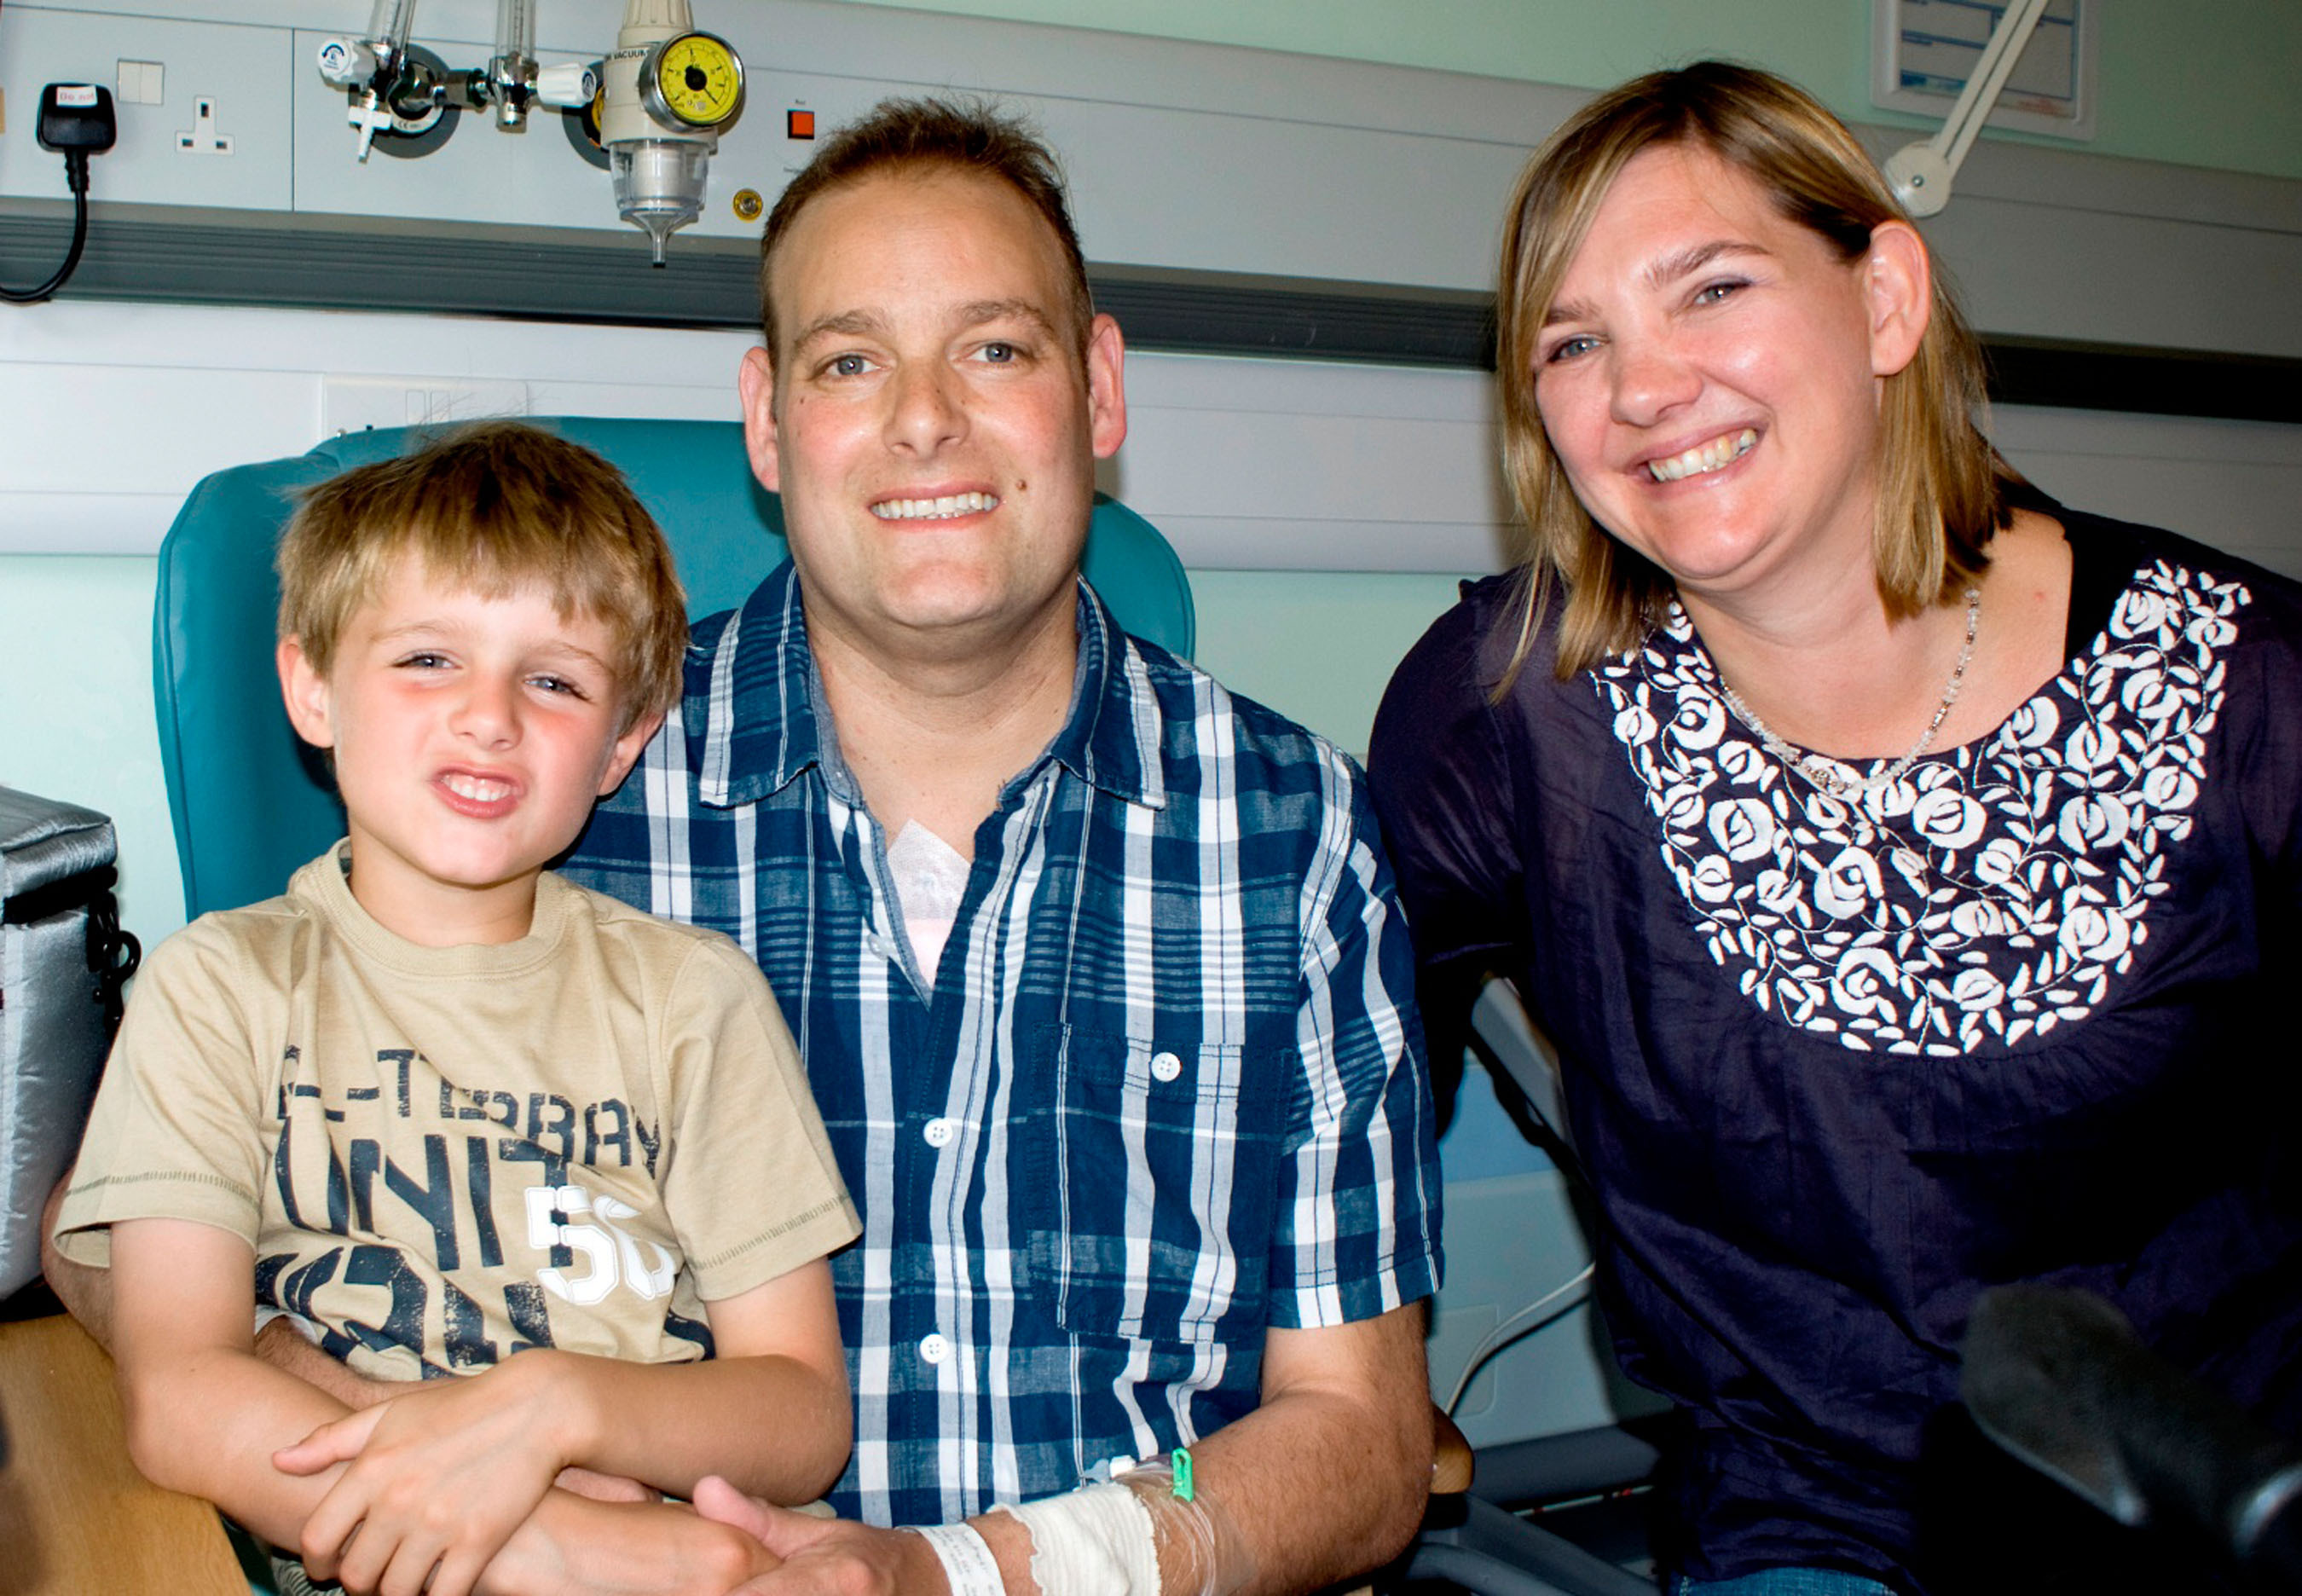 Matthew Green (pictured with his wife Gill and son Dylan) became the first patient in the United Kingdom to be discharged from the hospital with the SynCardia Total Artificial Heart, powered by the Freedom portable driver, on Aug. 2, 2011. Mr. Green was supported for over 600 days before receiving his donor heart earlier this year.  (PRNewsFoto/SynCardia Systems, Inc.)